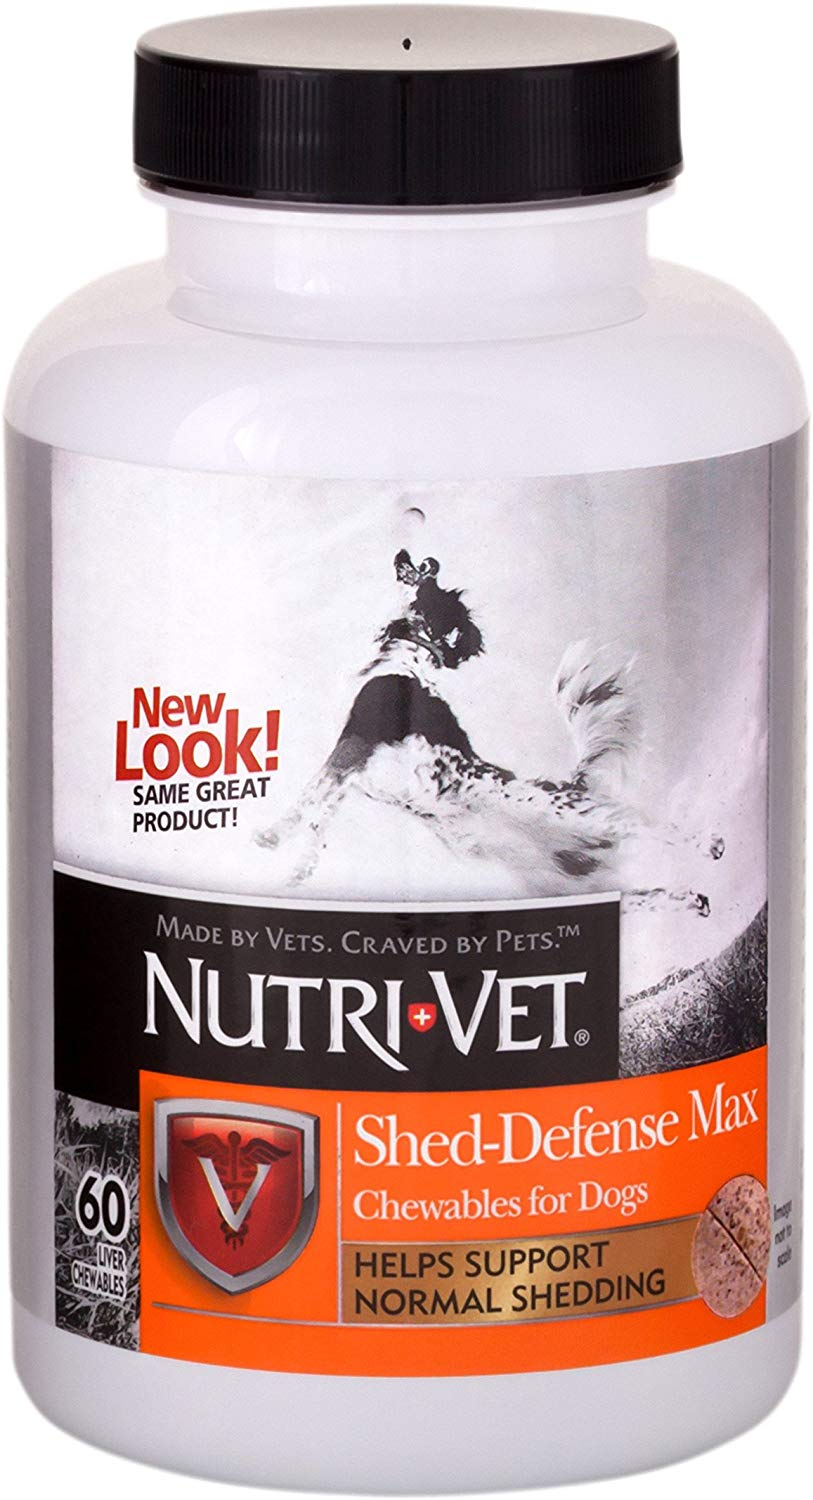 Вітаміни Nutri-vet Shed-Defense Max мультикомплекс з Омега-3